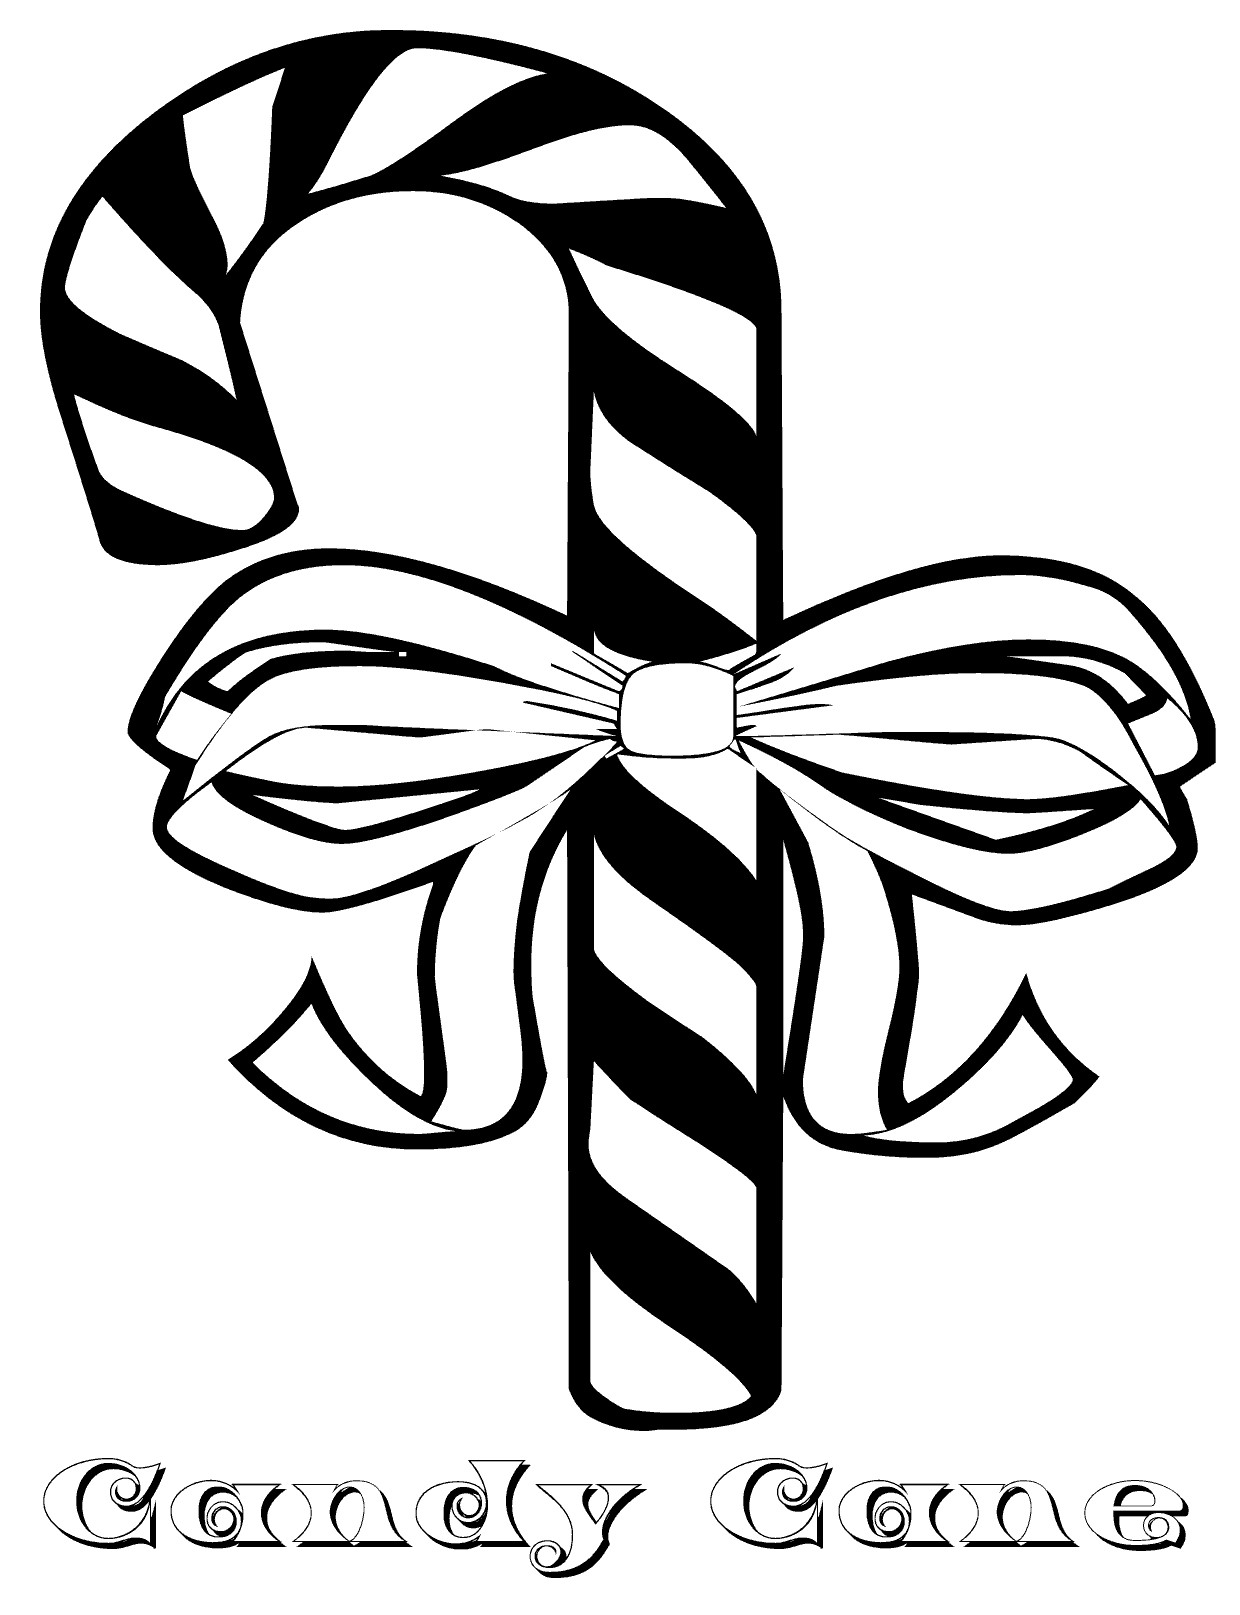 Candy Cane Printable Coloring Pages At Getcolorings